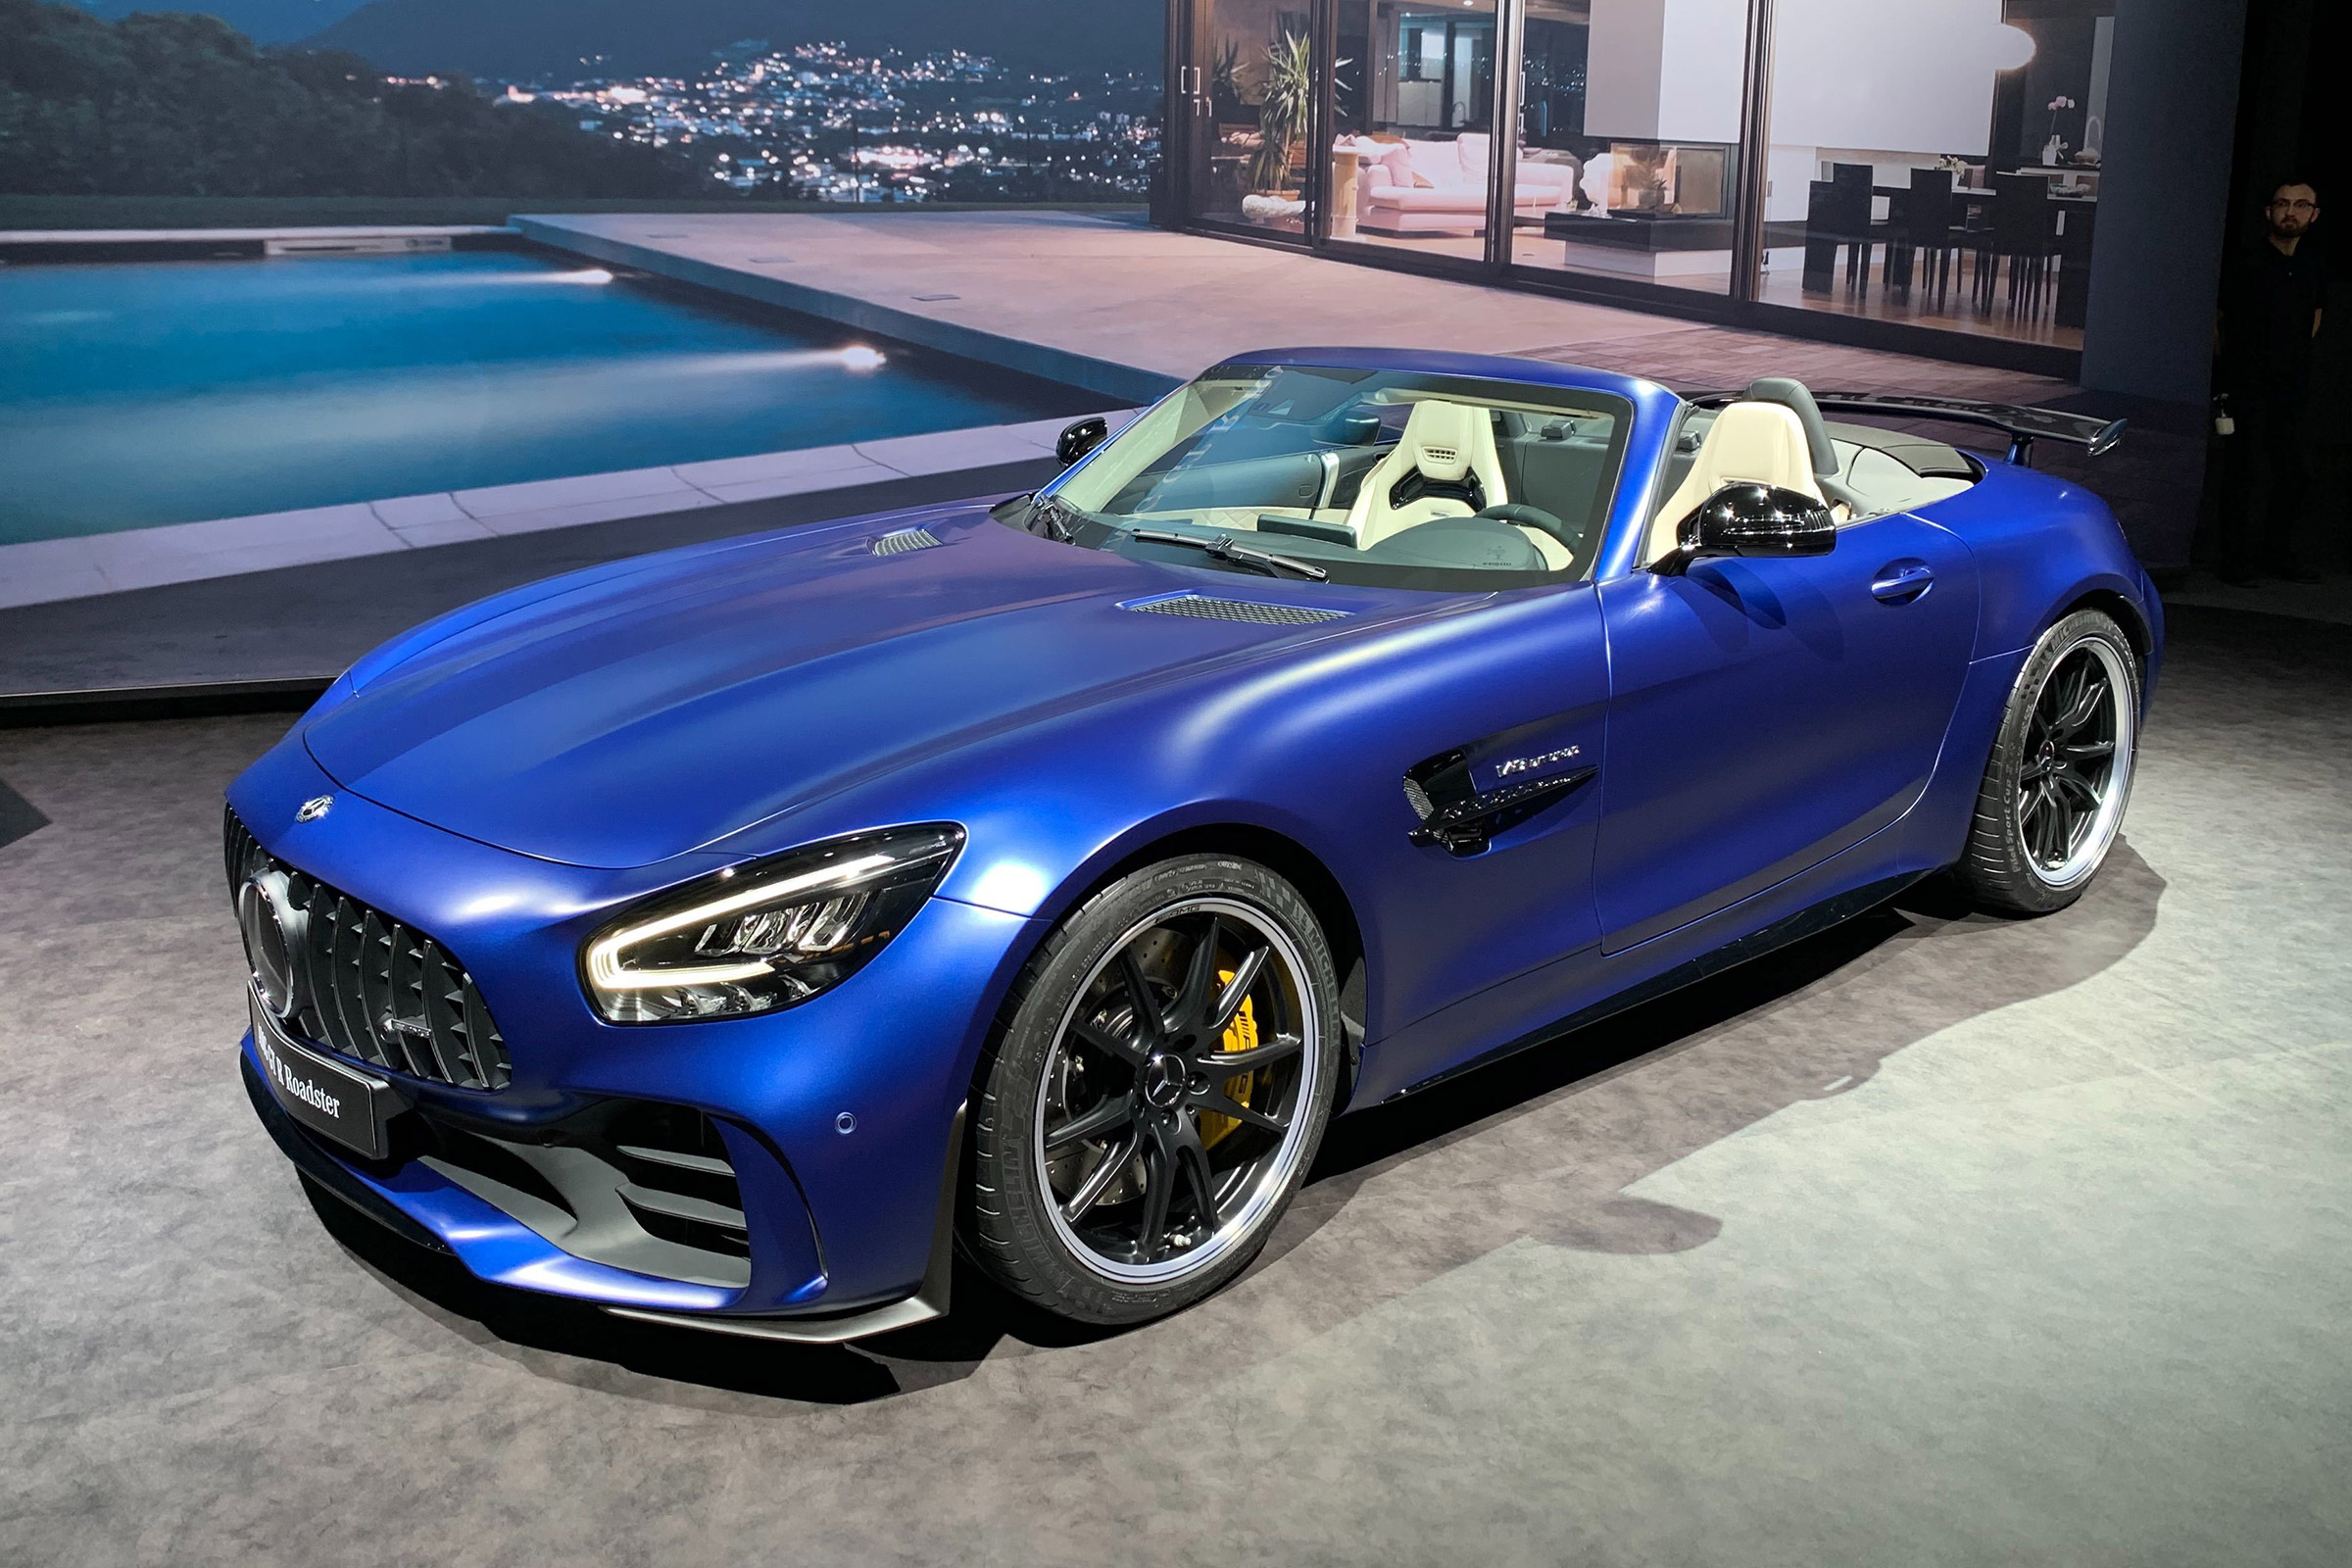 Mercedes Amg Gt R Roadster Prices Announced For 577bhp Droptop Auto Express